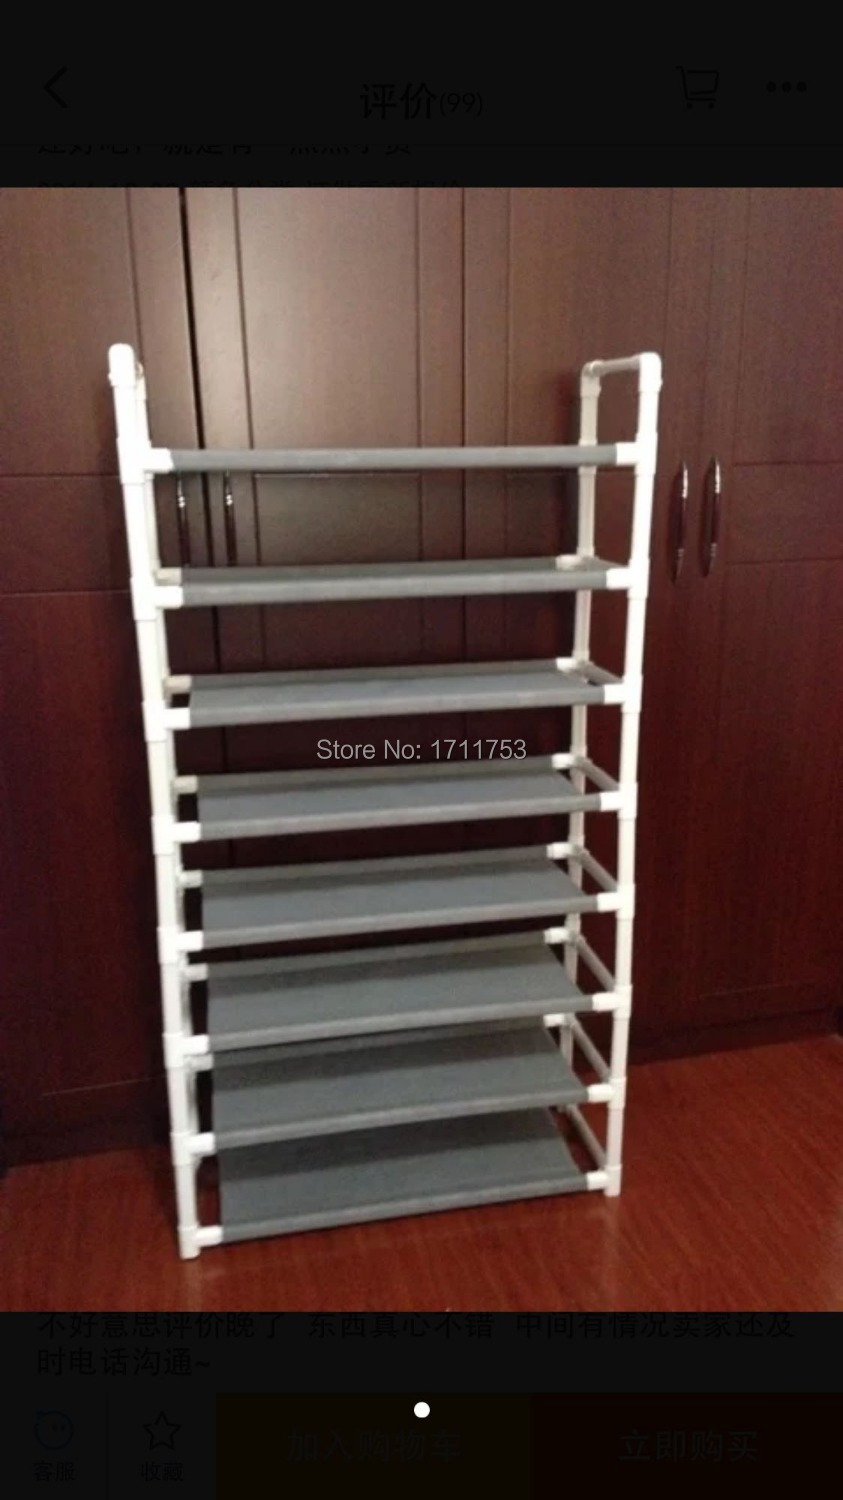 Detachable plastic shoe rack dustproof waterproof non-woven shoe rack multilayer combined simple modern creative factory direct(China (Mainland))